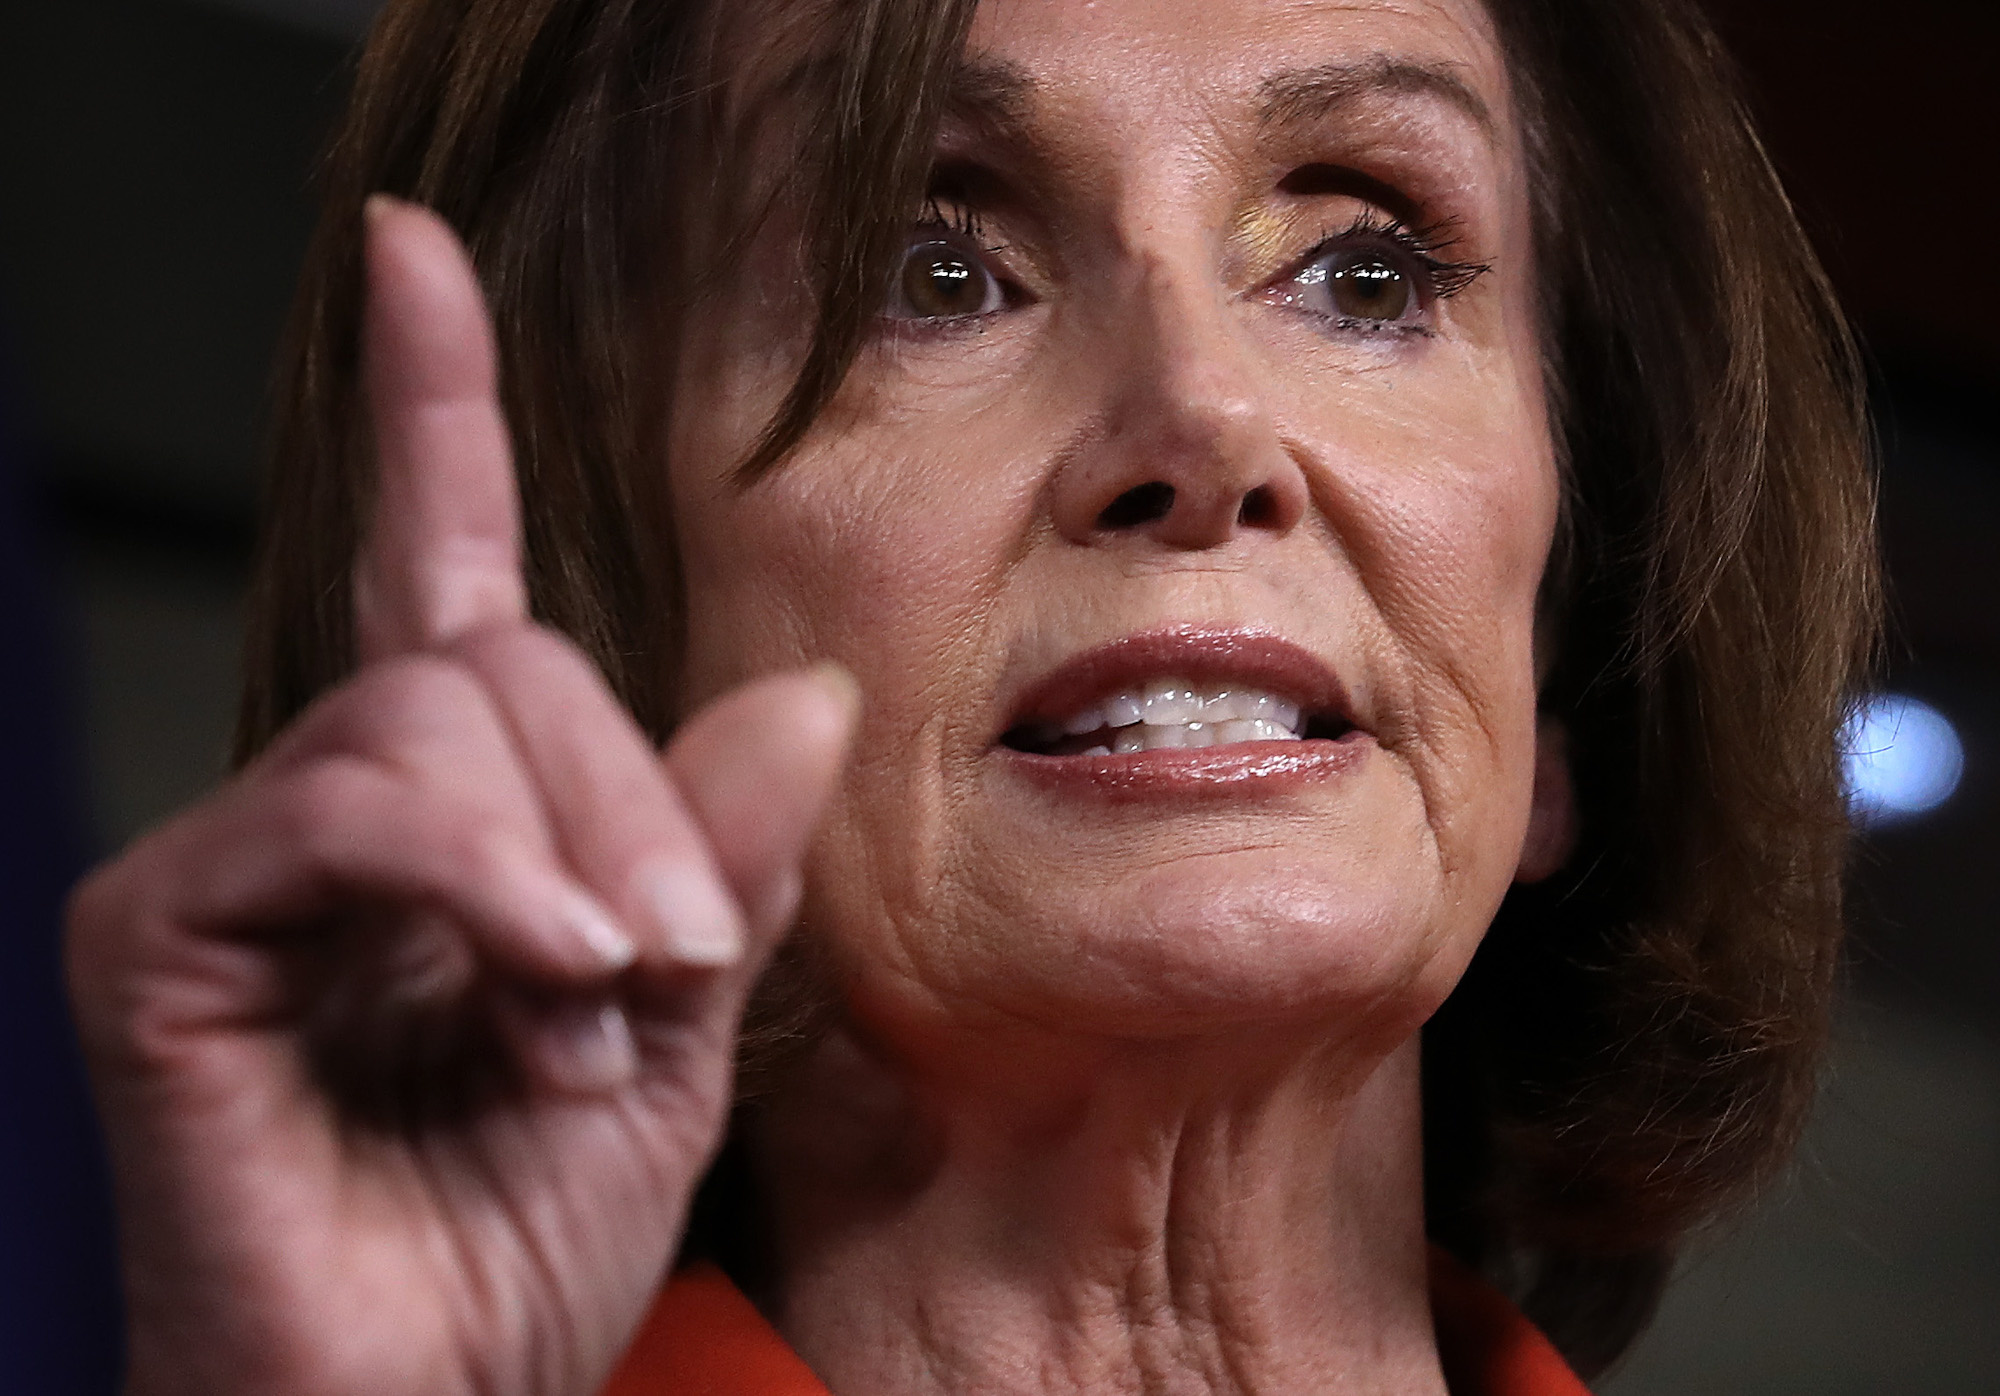 Nancy Pelosi says people who want fewer abortions should 'love' Planned Parenthood